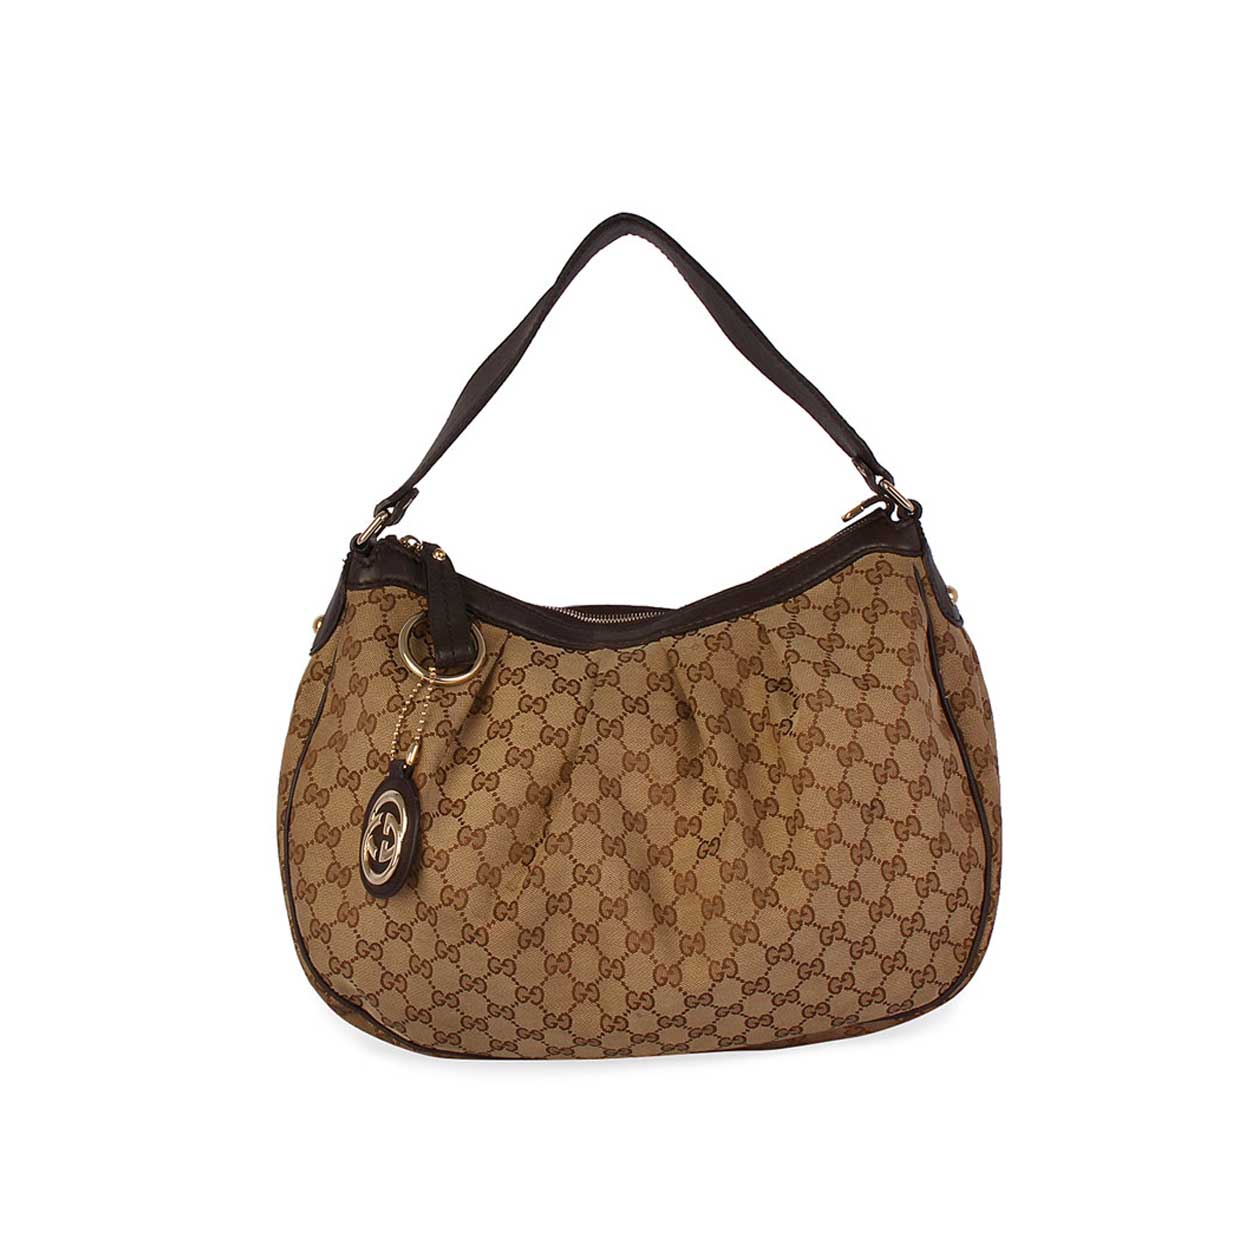 Gucci Handbags Online South Africa